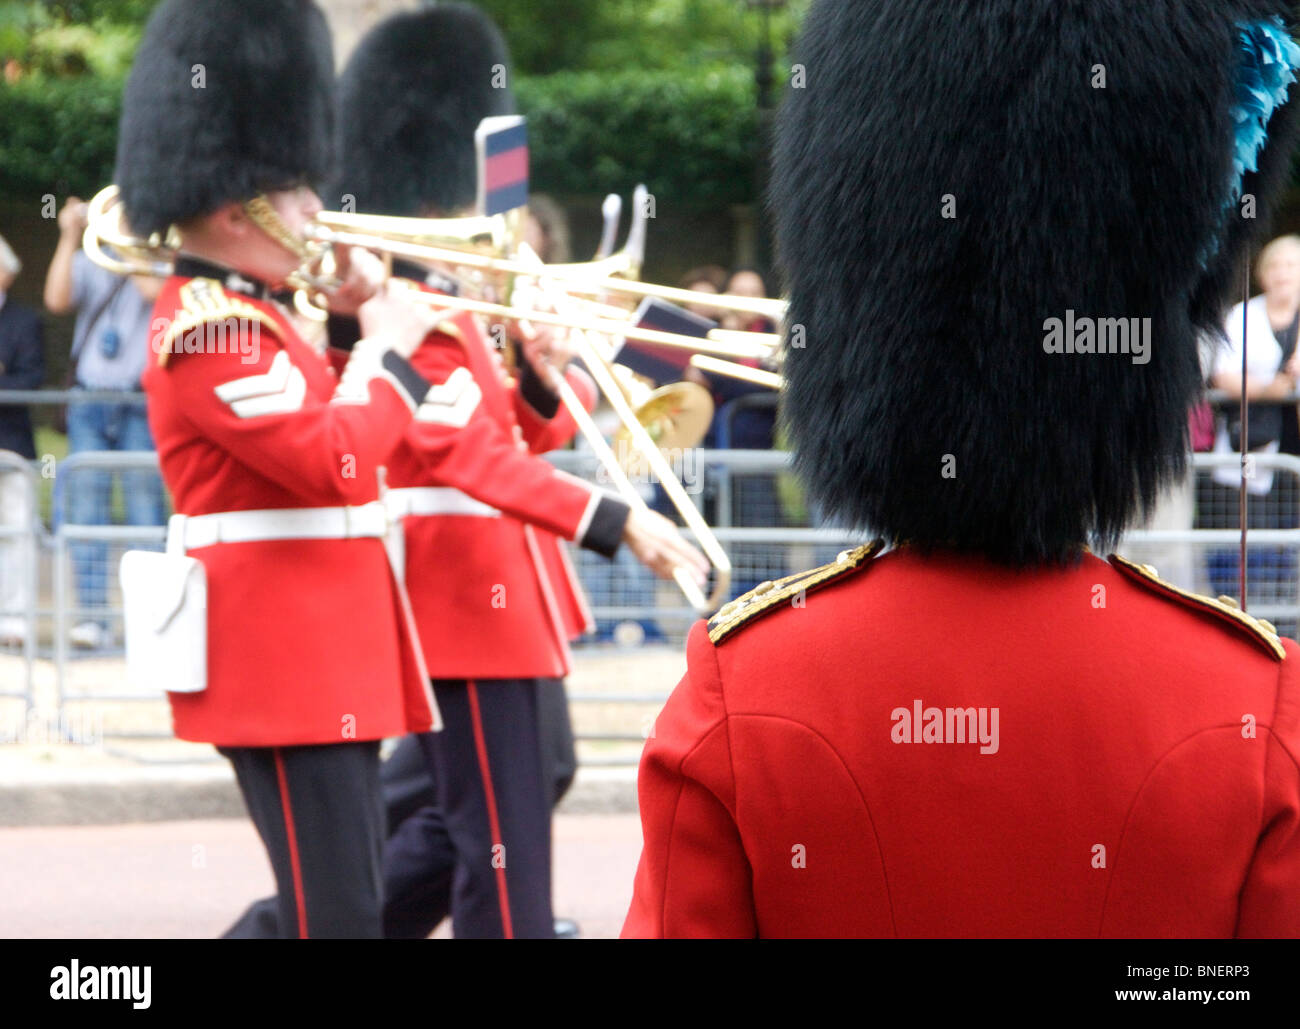 Trooping the Colour June 2010 Irish Guardsman with marching band on the Mall London England UK - Stock Image